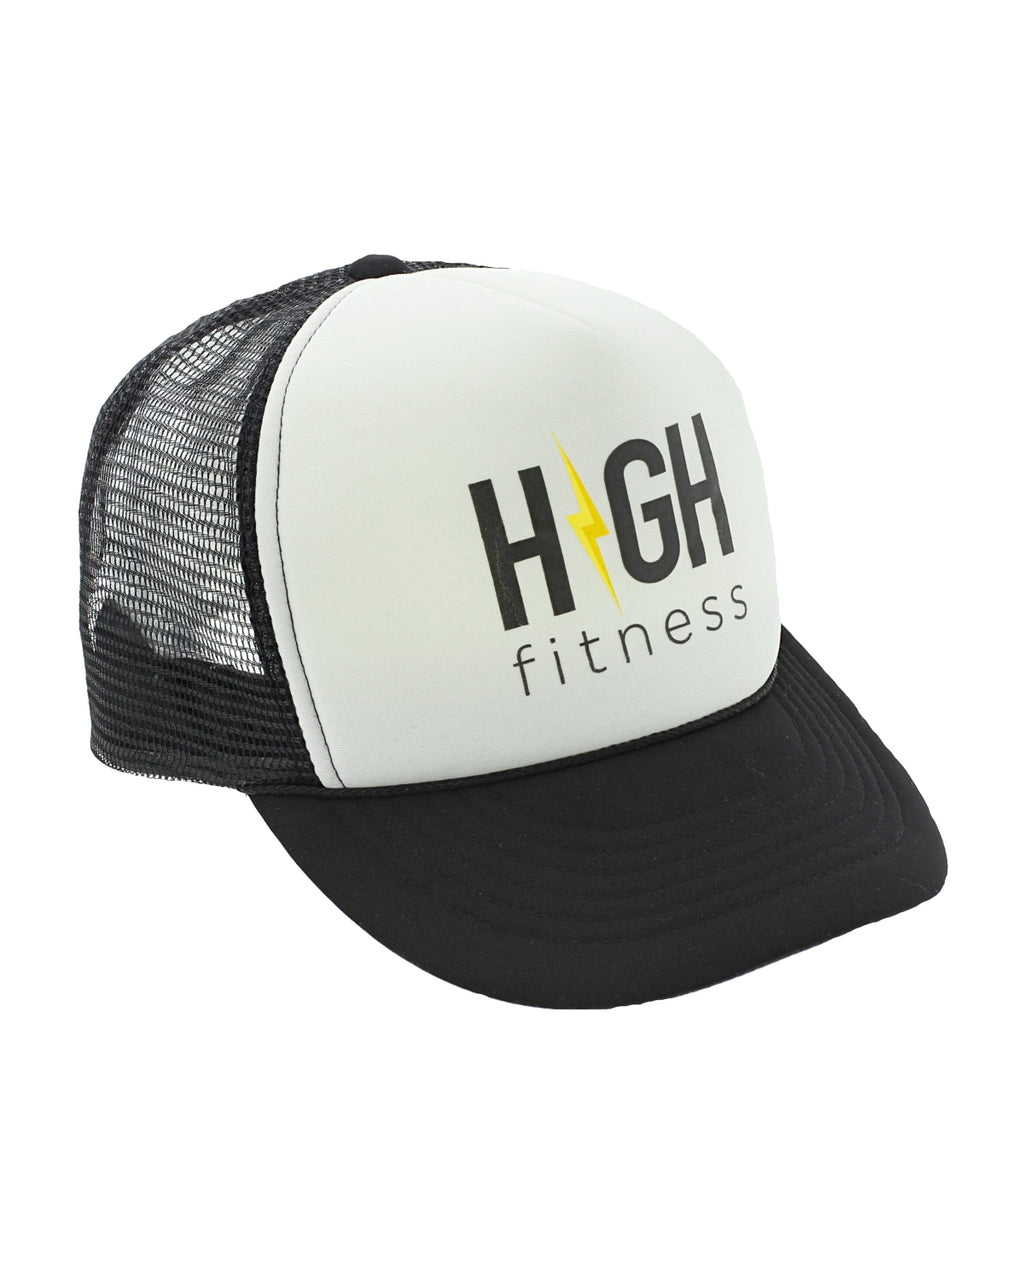 HIGH Fitness Black and White Trucker Hat